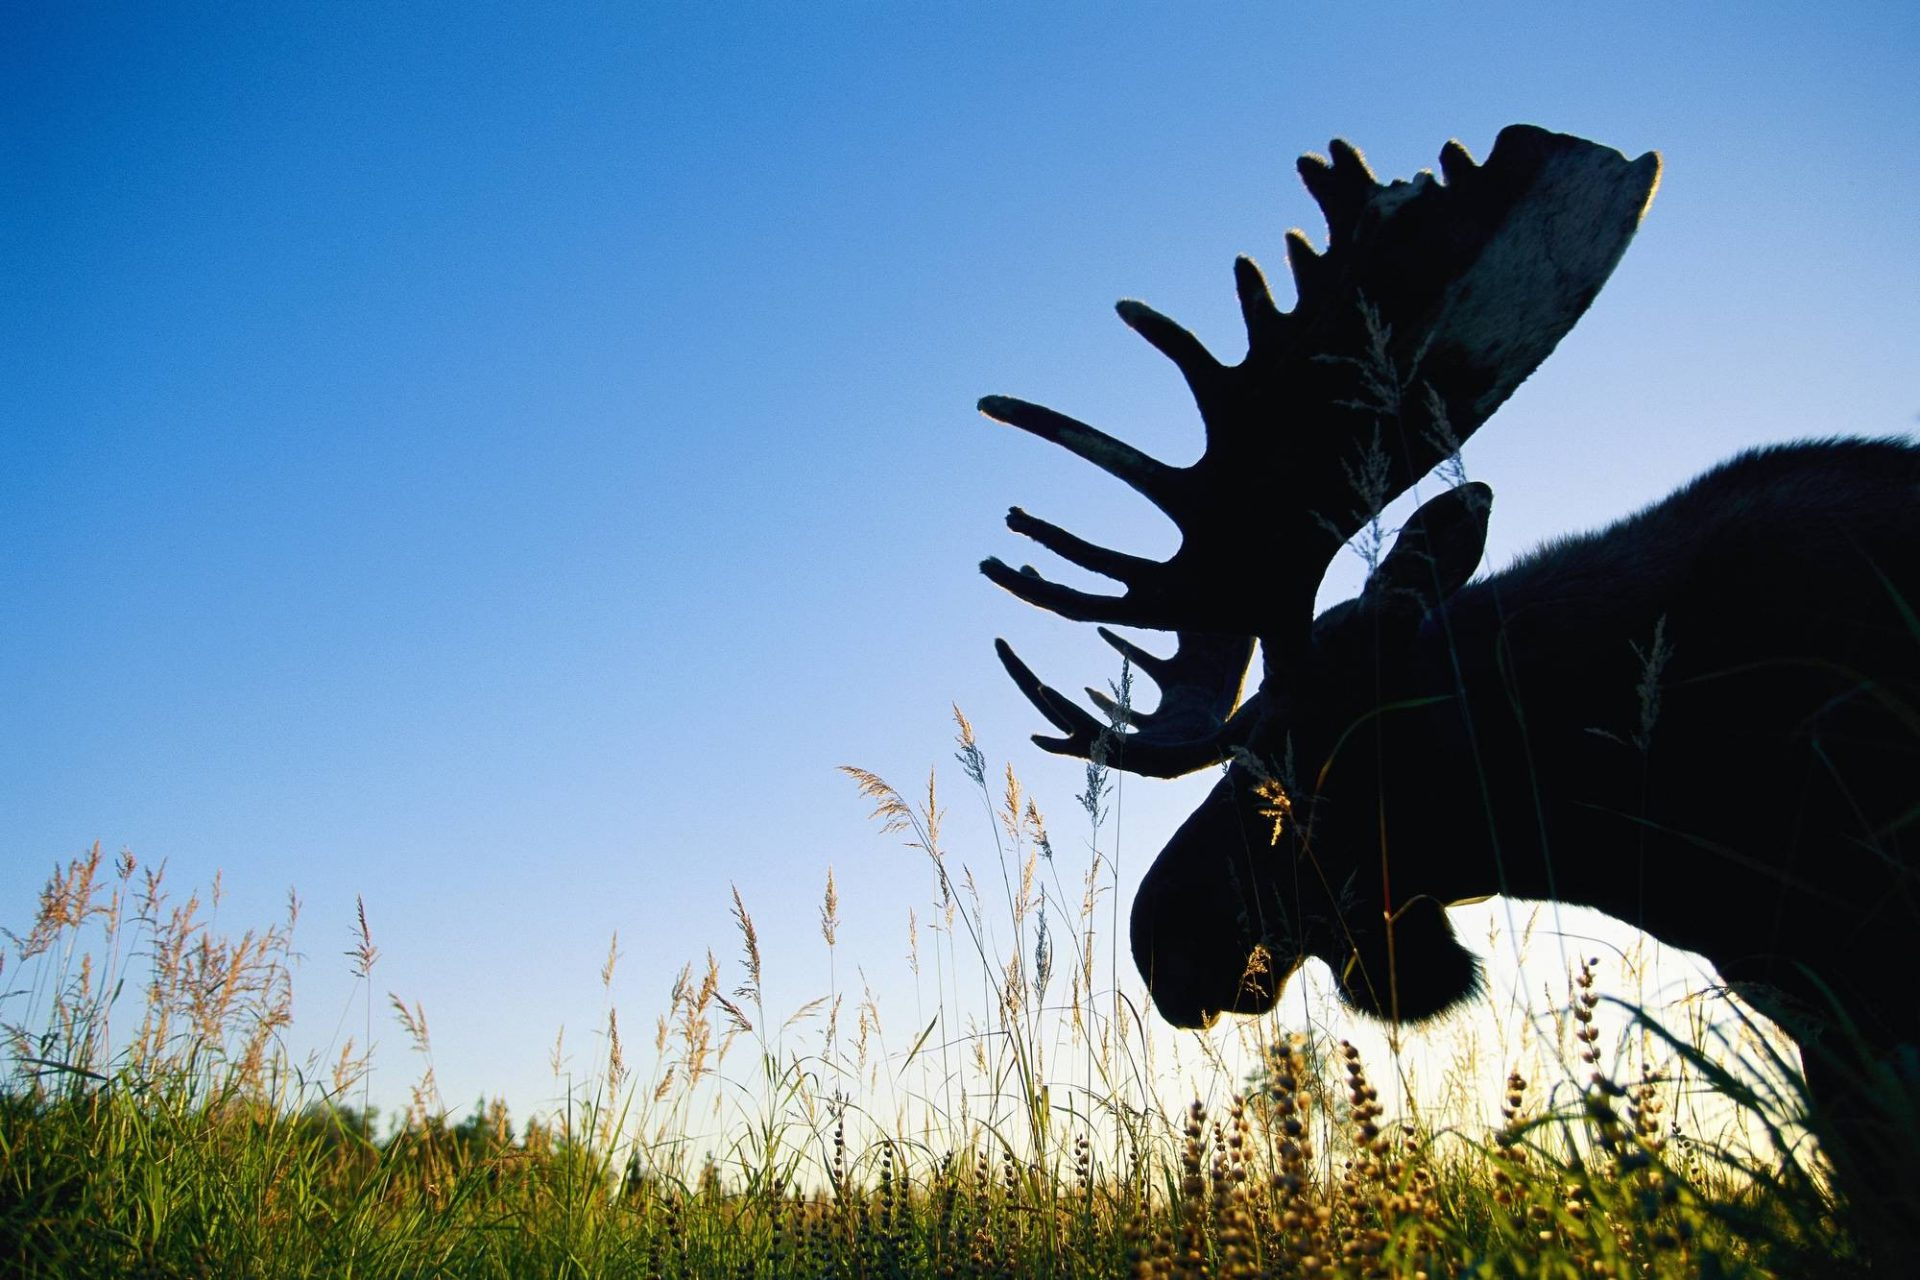 Photo: A moose's head is silhouetted against the landscape.